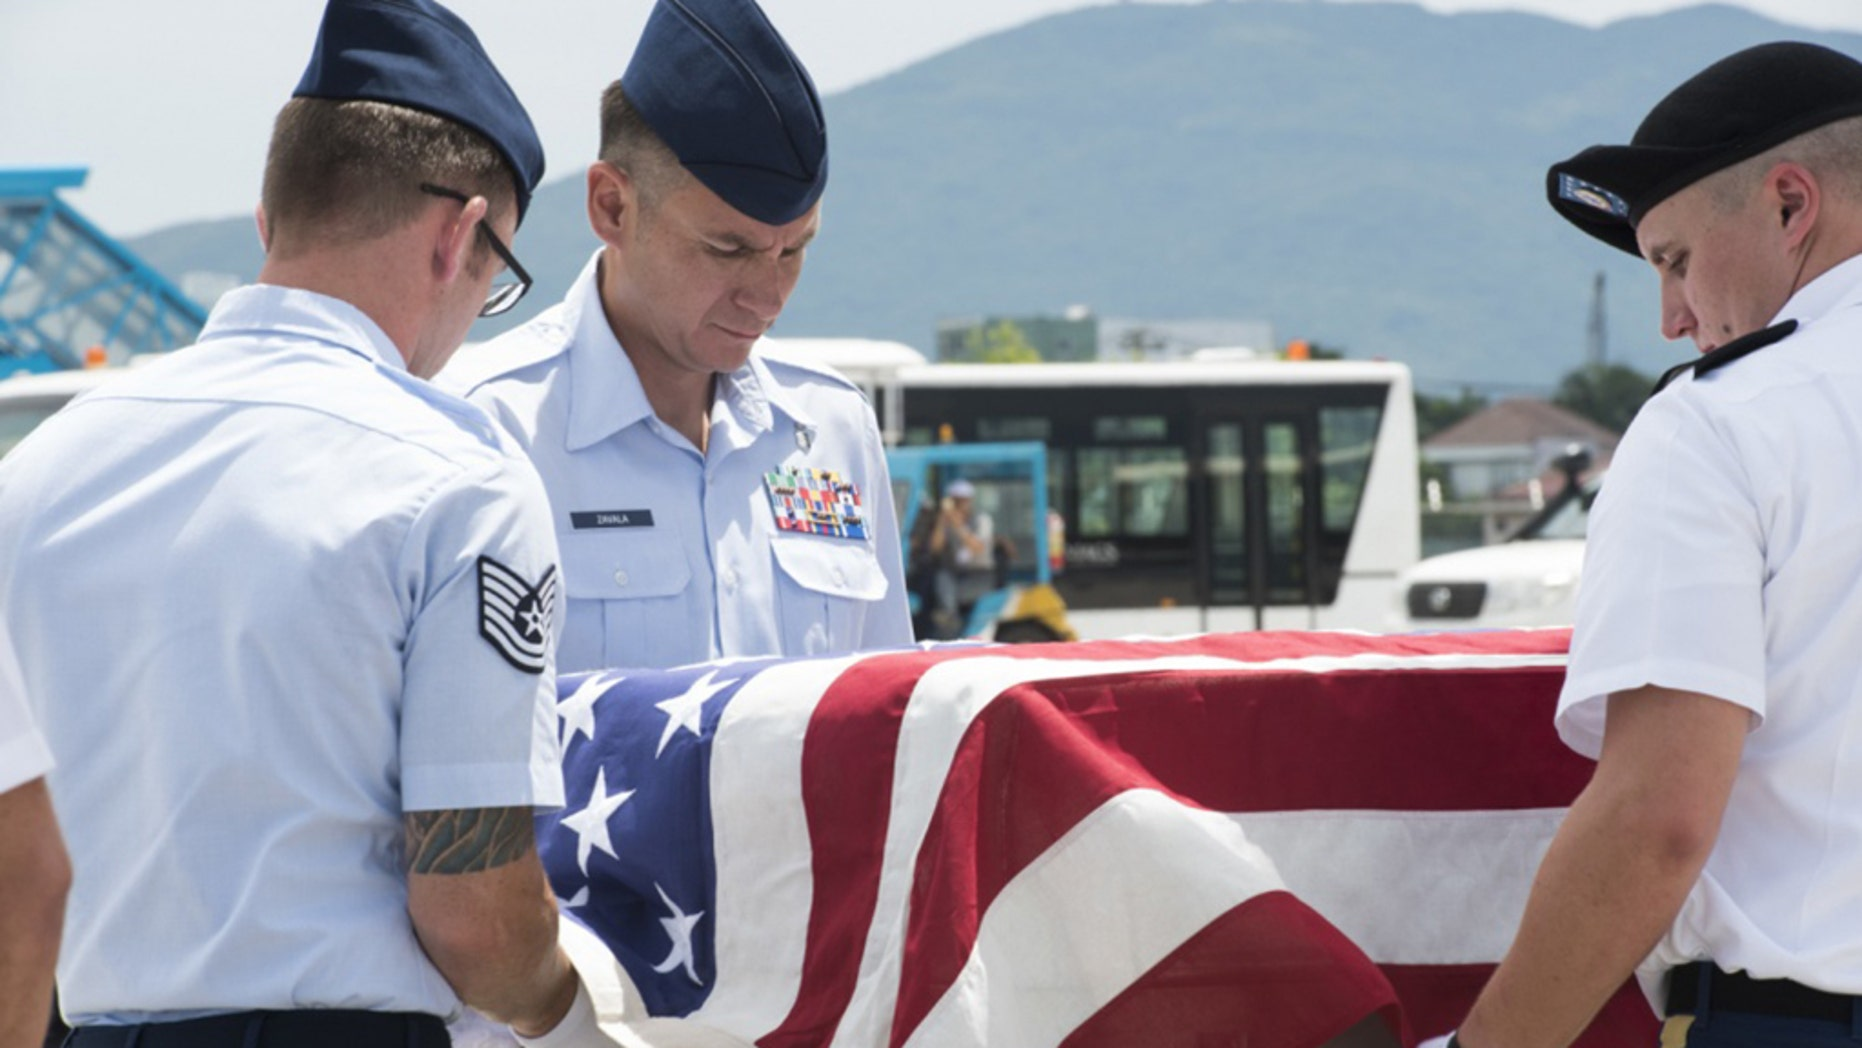 U.S. service members assigned to the Defense POW/MIA Accounting Agency (DPAA), drape a transfer case with the American flag during a repatriation ceremony, Da Nang, Socialist Republic of Vietnam, July 8, 2018.